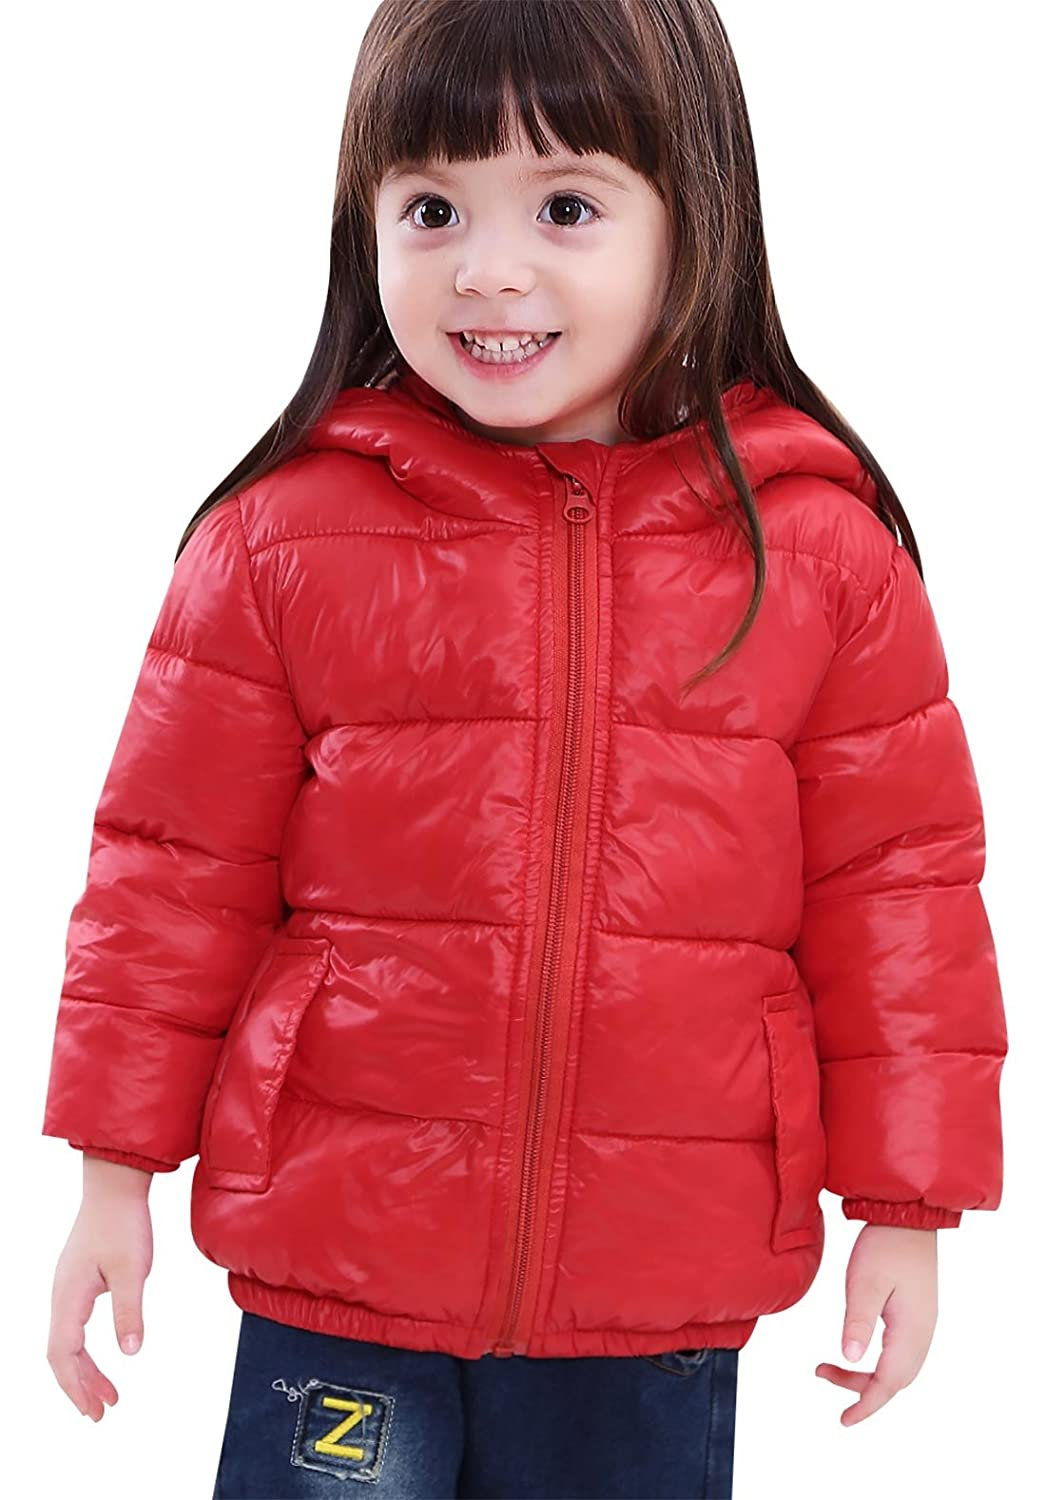 SLUBY Little Kids Puffer Jacket Cozy Down Coat With Hood for Girls Boys 2T-6Y